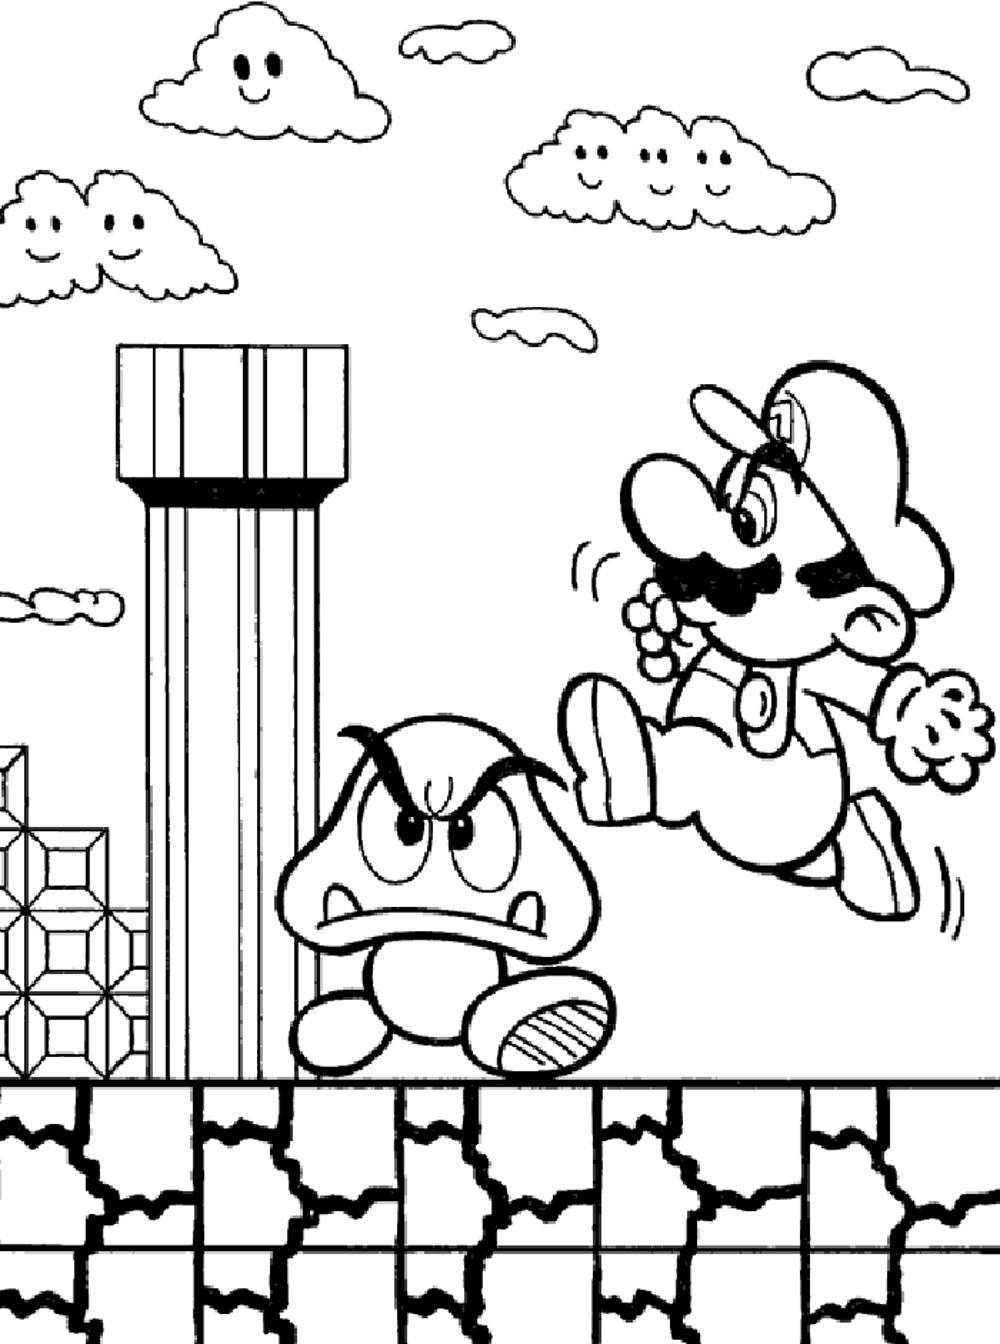 Mario and Luigi Coloring Pages Collection – Free Coloring Sheets